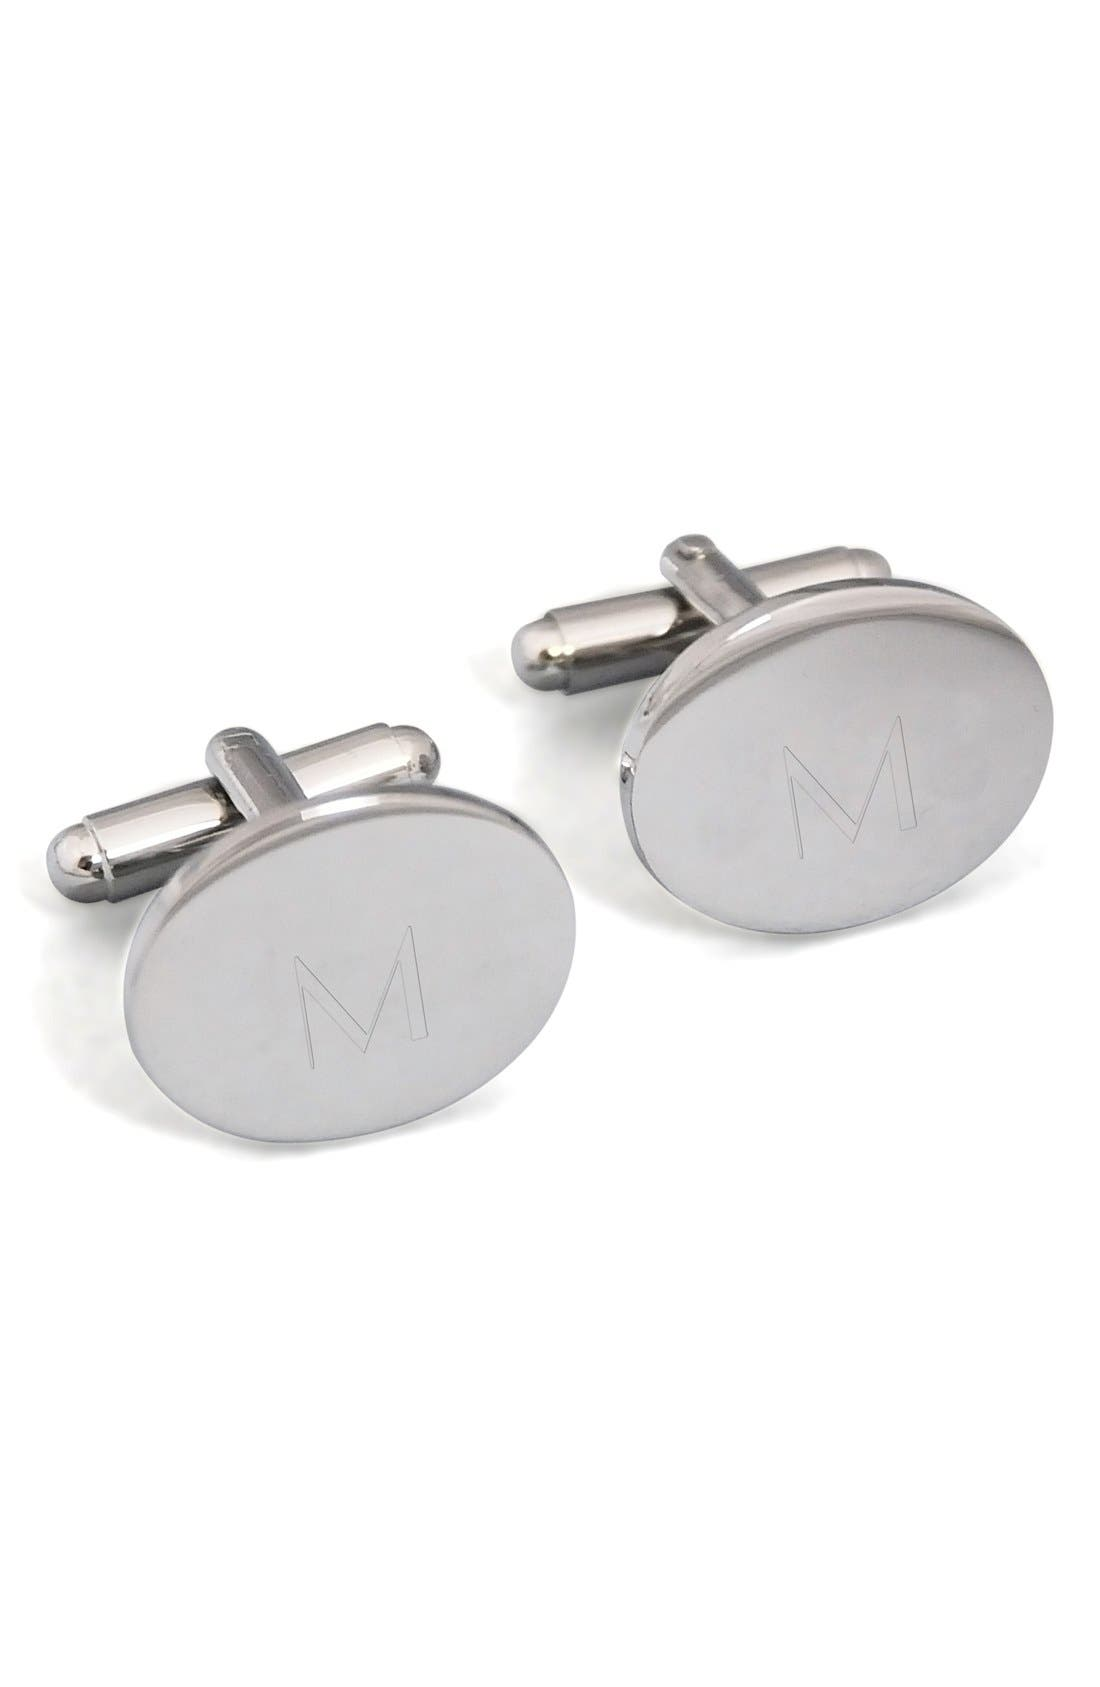 Cathy's Concepts Monogram Oval Cuff Links